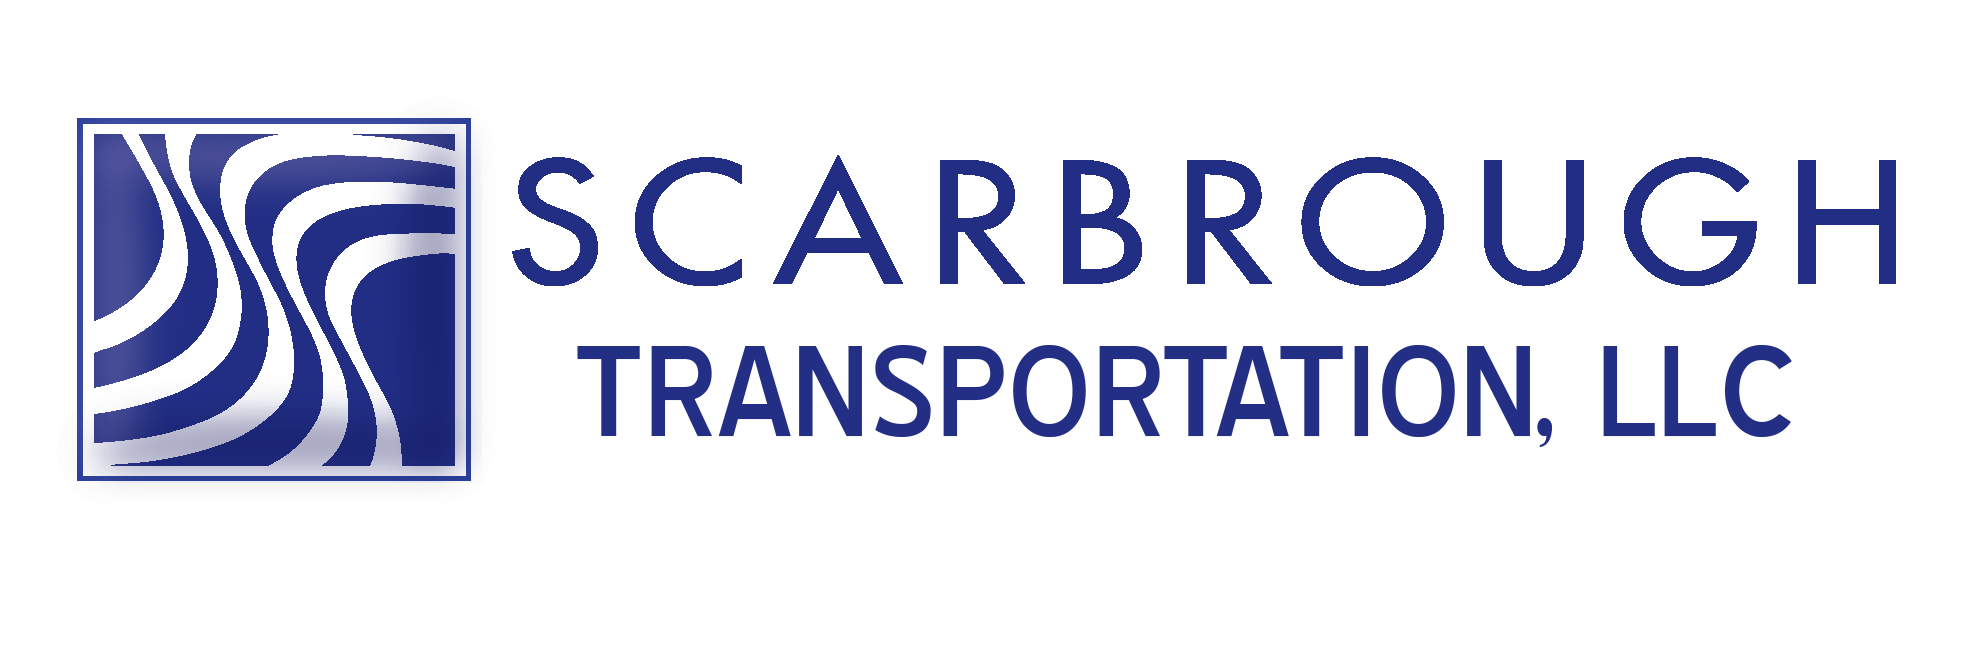 Scarbrough Transportation LLC